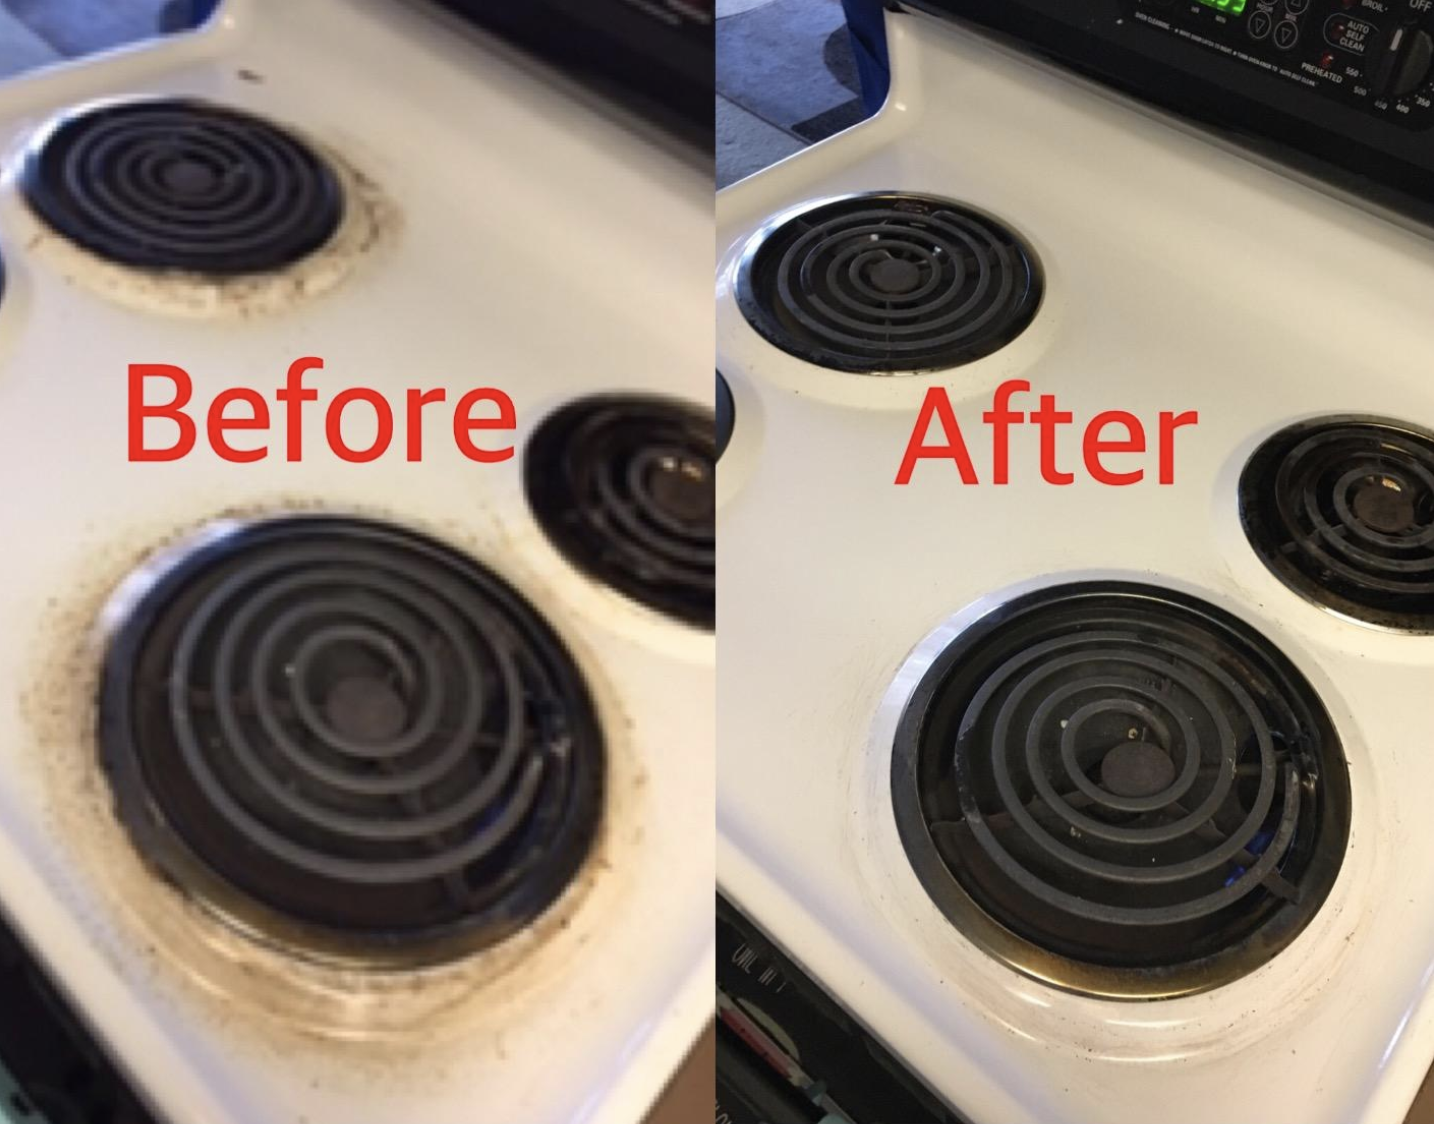 A customer review photo showing their stove top before and after using the cleaner